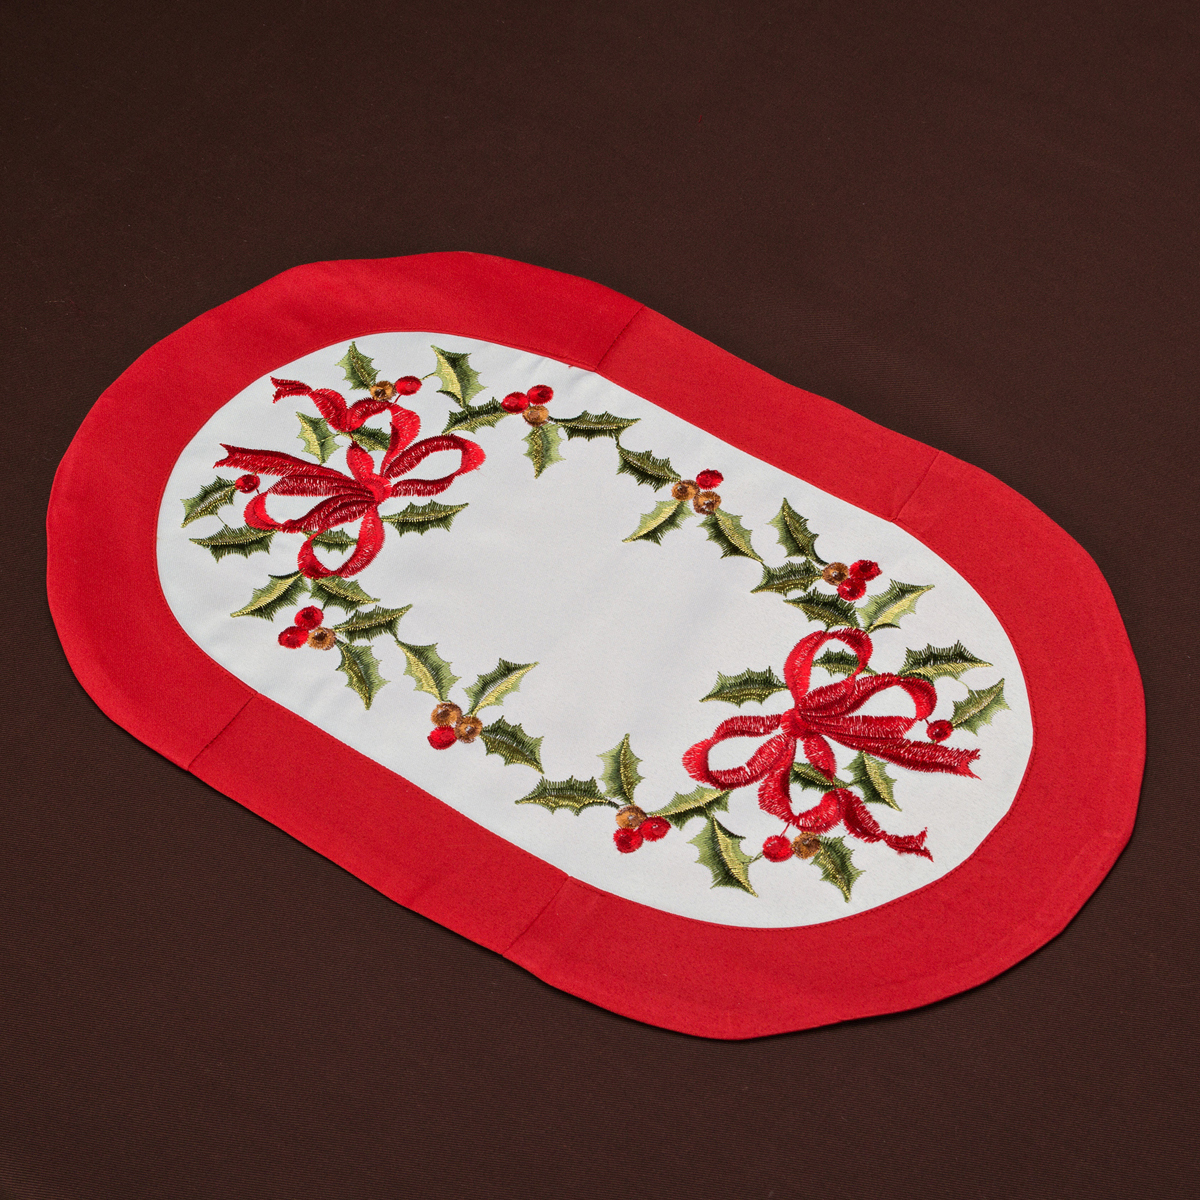 Индивидуальная скатерть Holly Wreath Oval S, 30x45 см, Полиэстер, Santalino, Россия, Holly Wreath